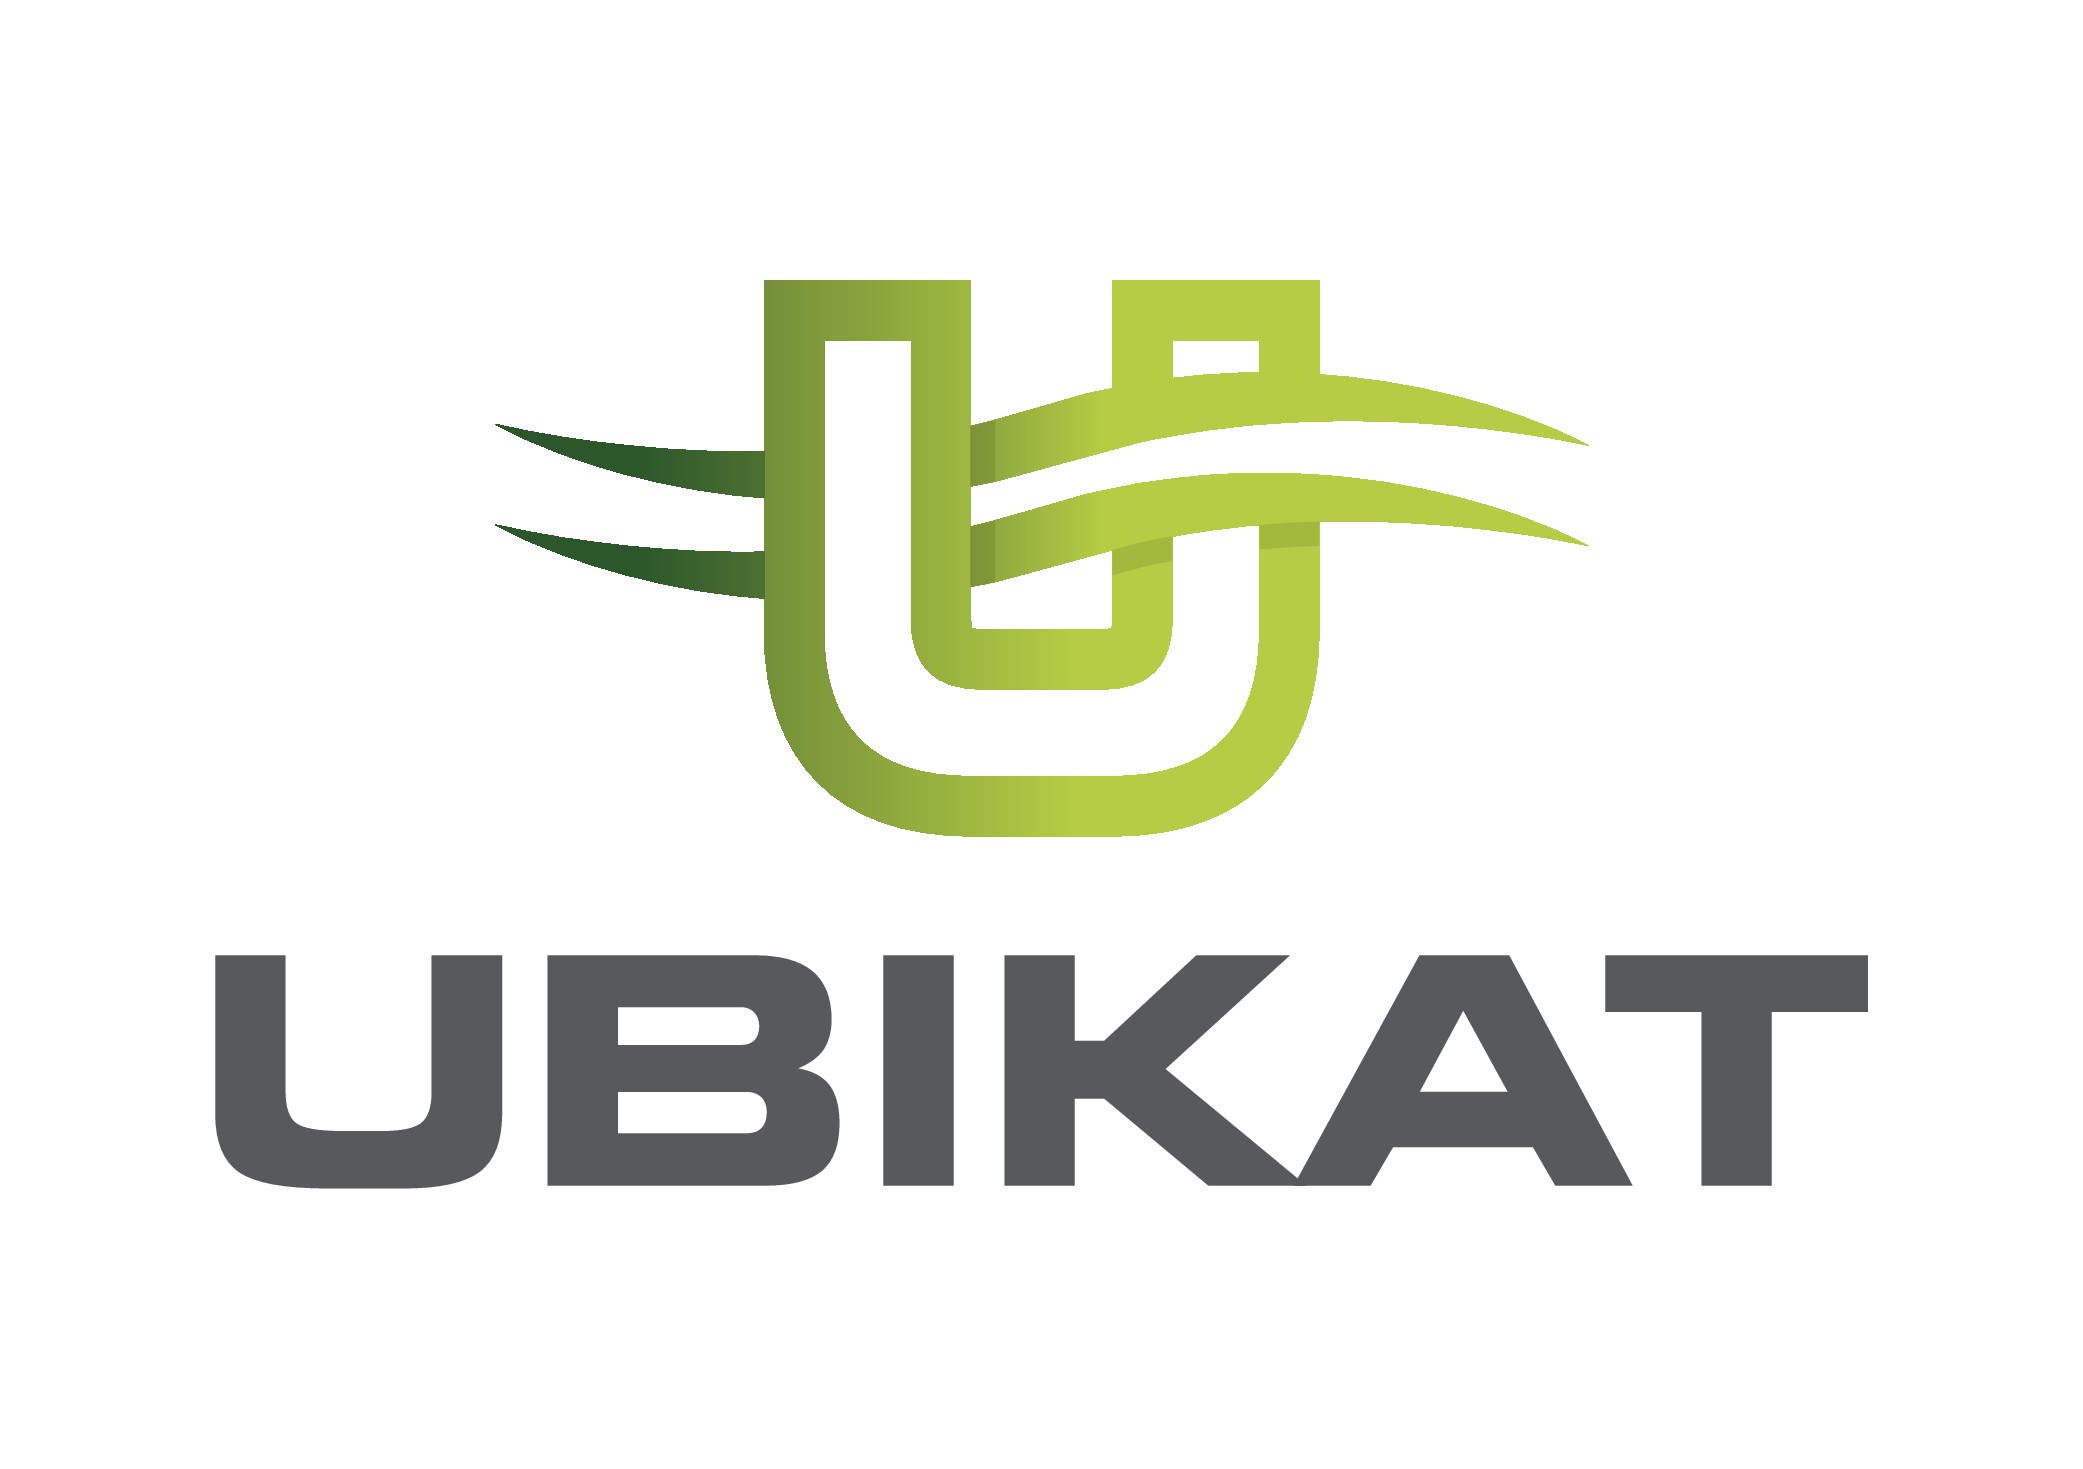 UBIKAT: A new solution against pollution needs a clear sign